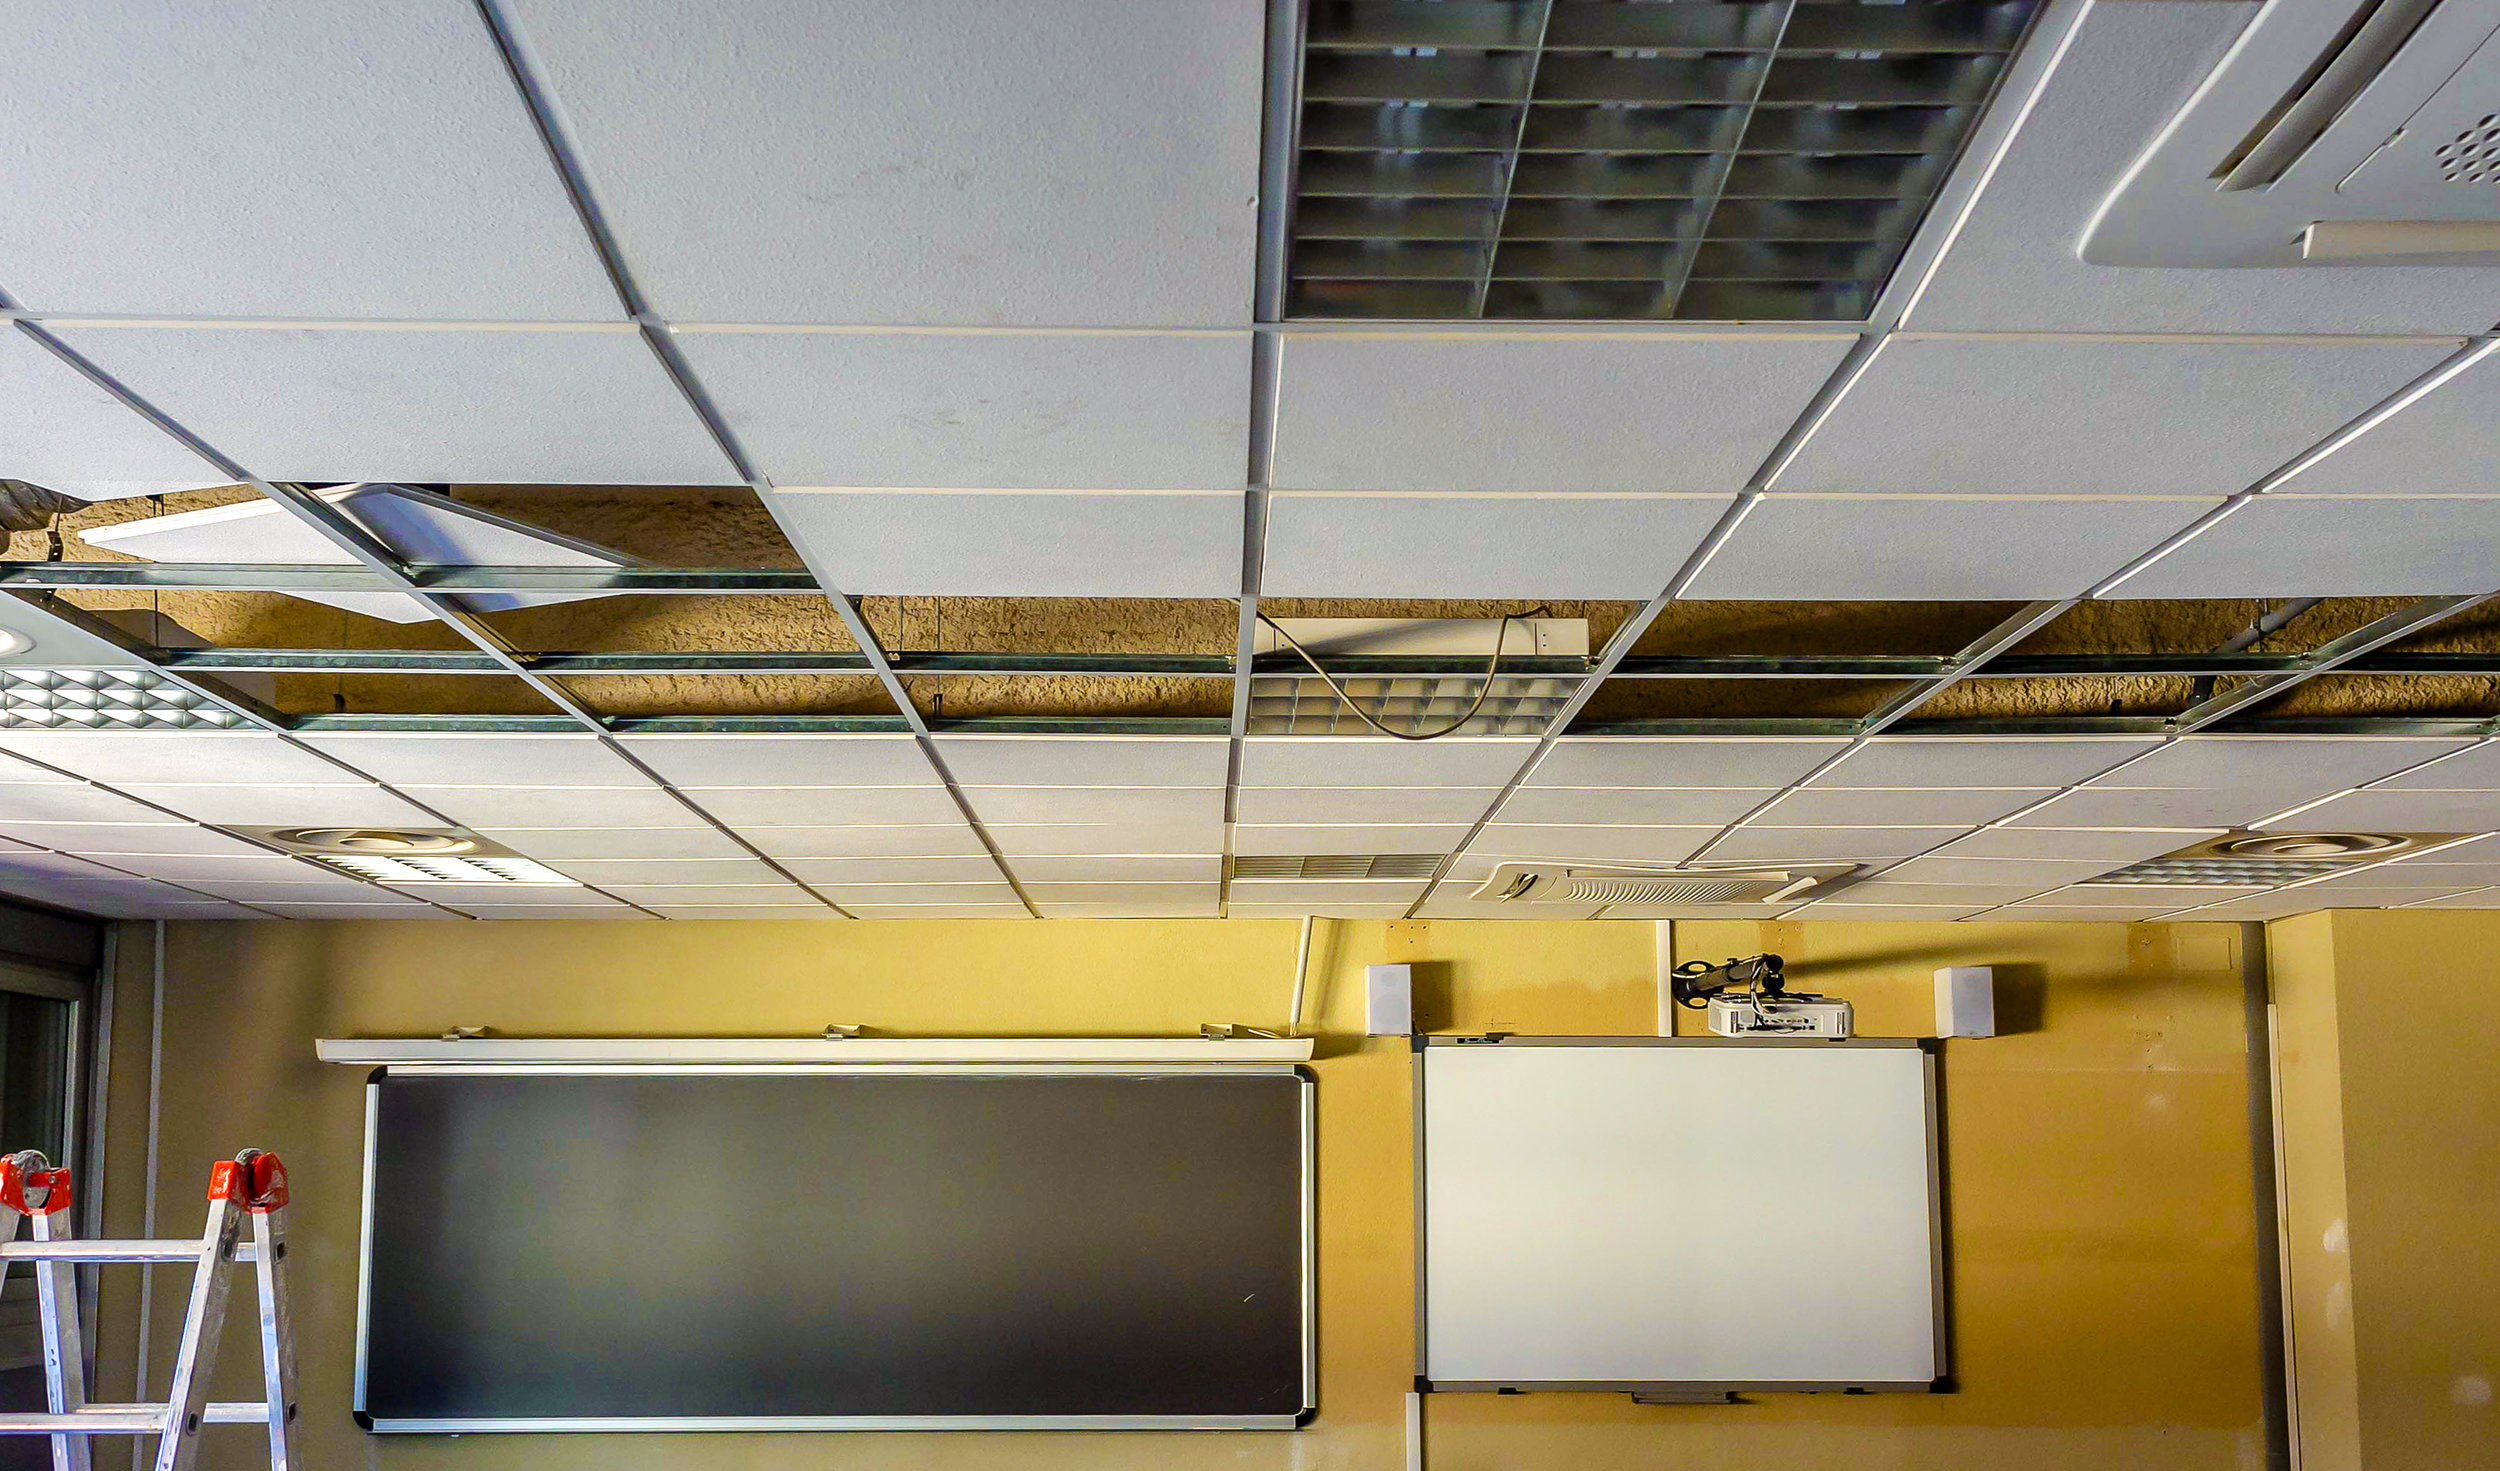 suspended ceiling installation | Custom Drywall ceiling contractor